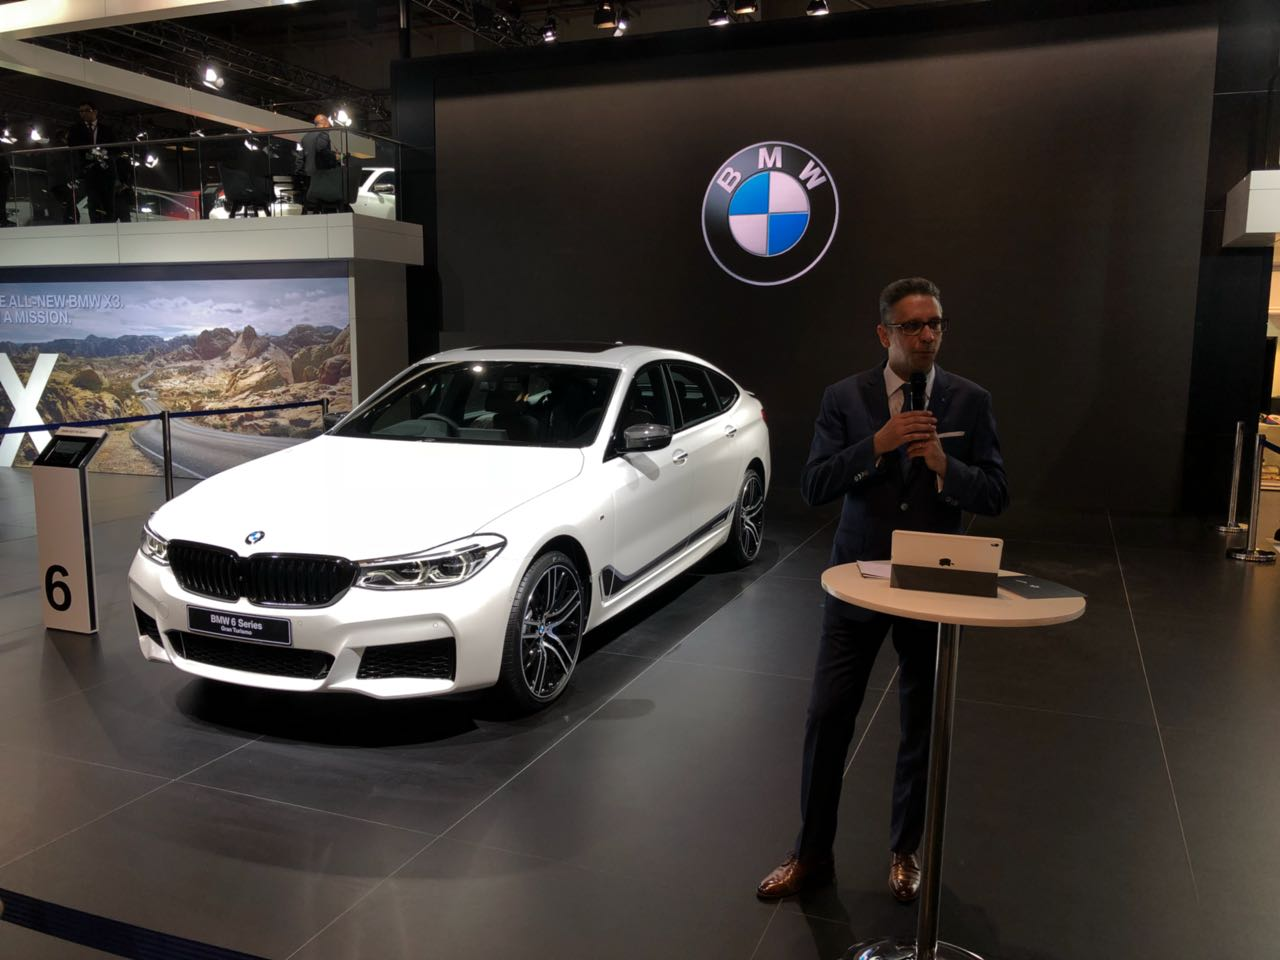 <p>The BMW X6 35i, M3 and M4 are being launched today!</p>